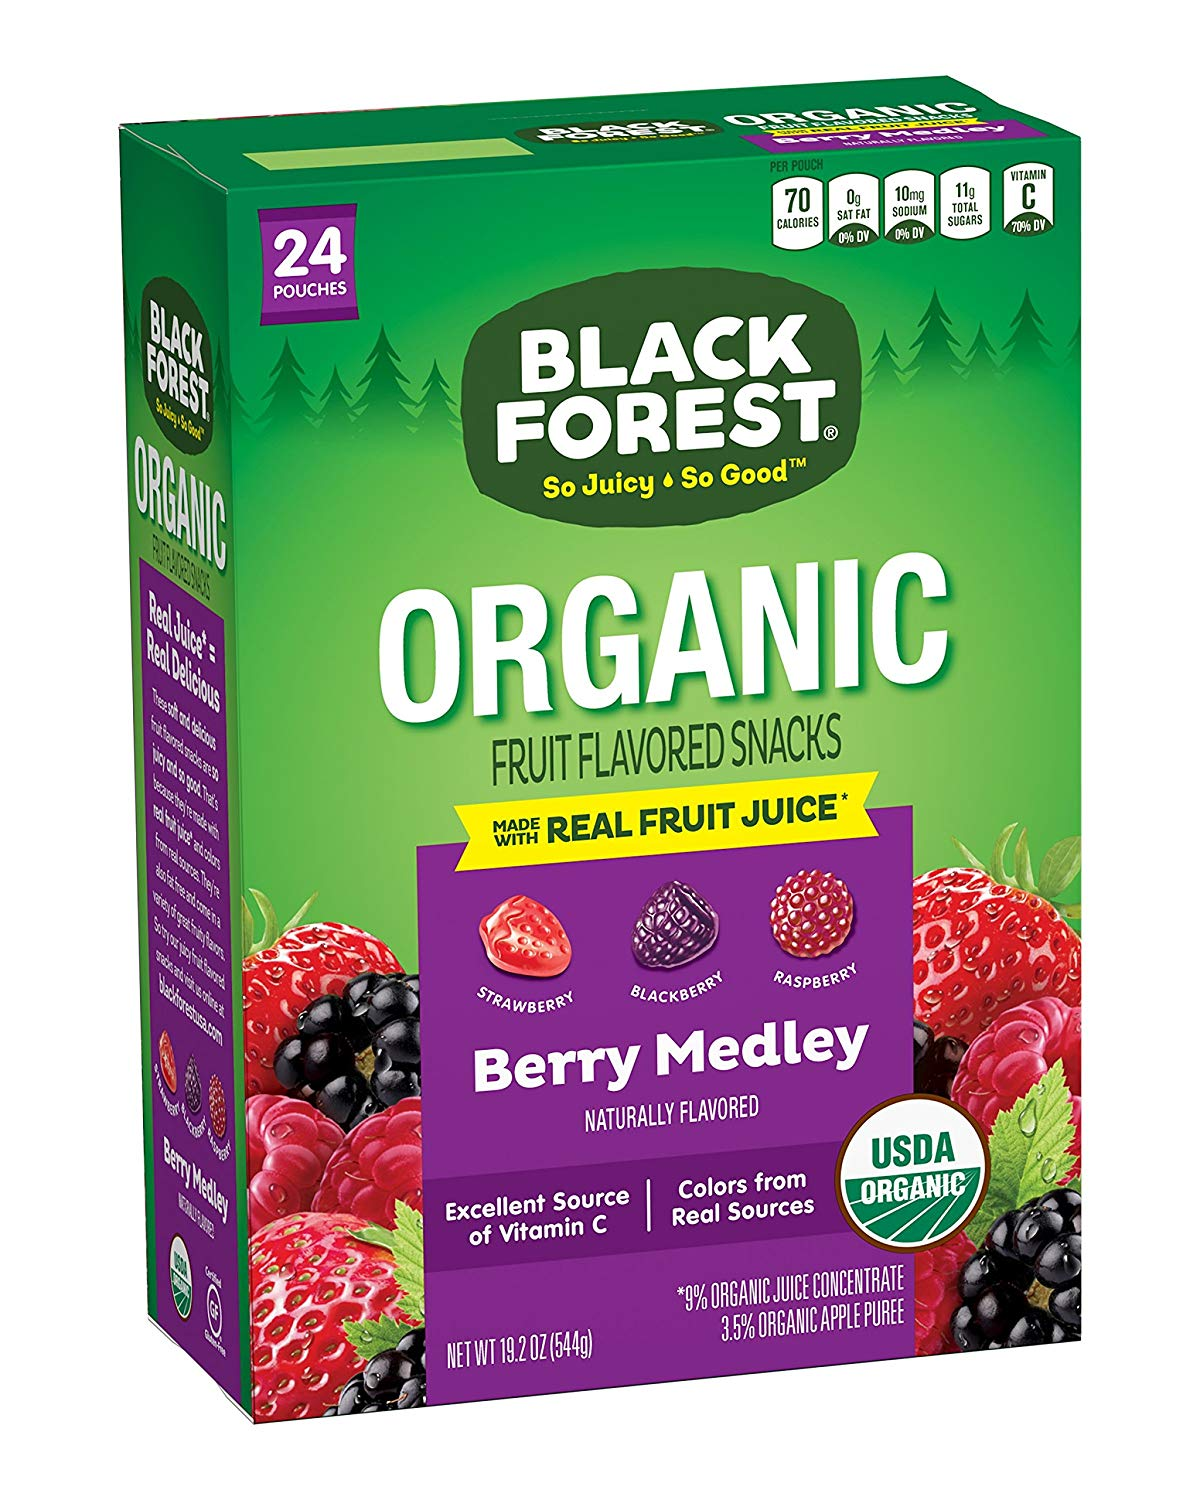 Black Forest Organic Fruit Snacks 24ct as low as $4.54 Shipped!